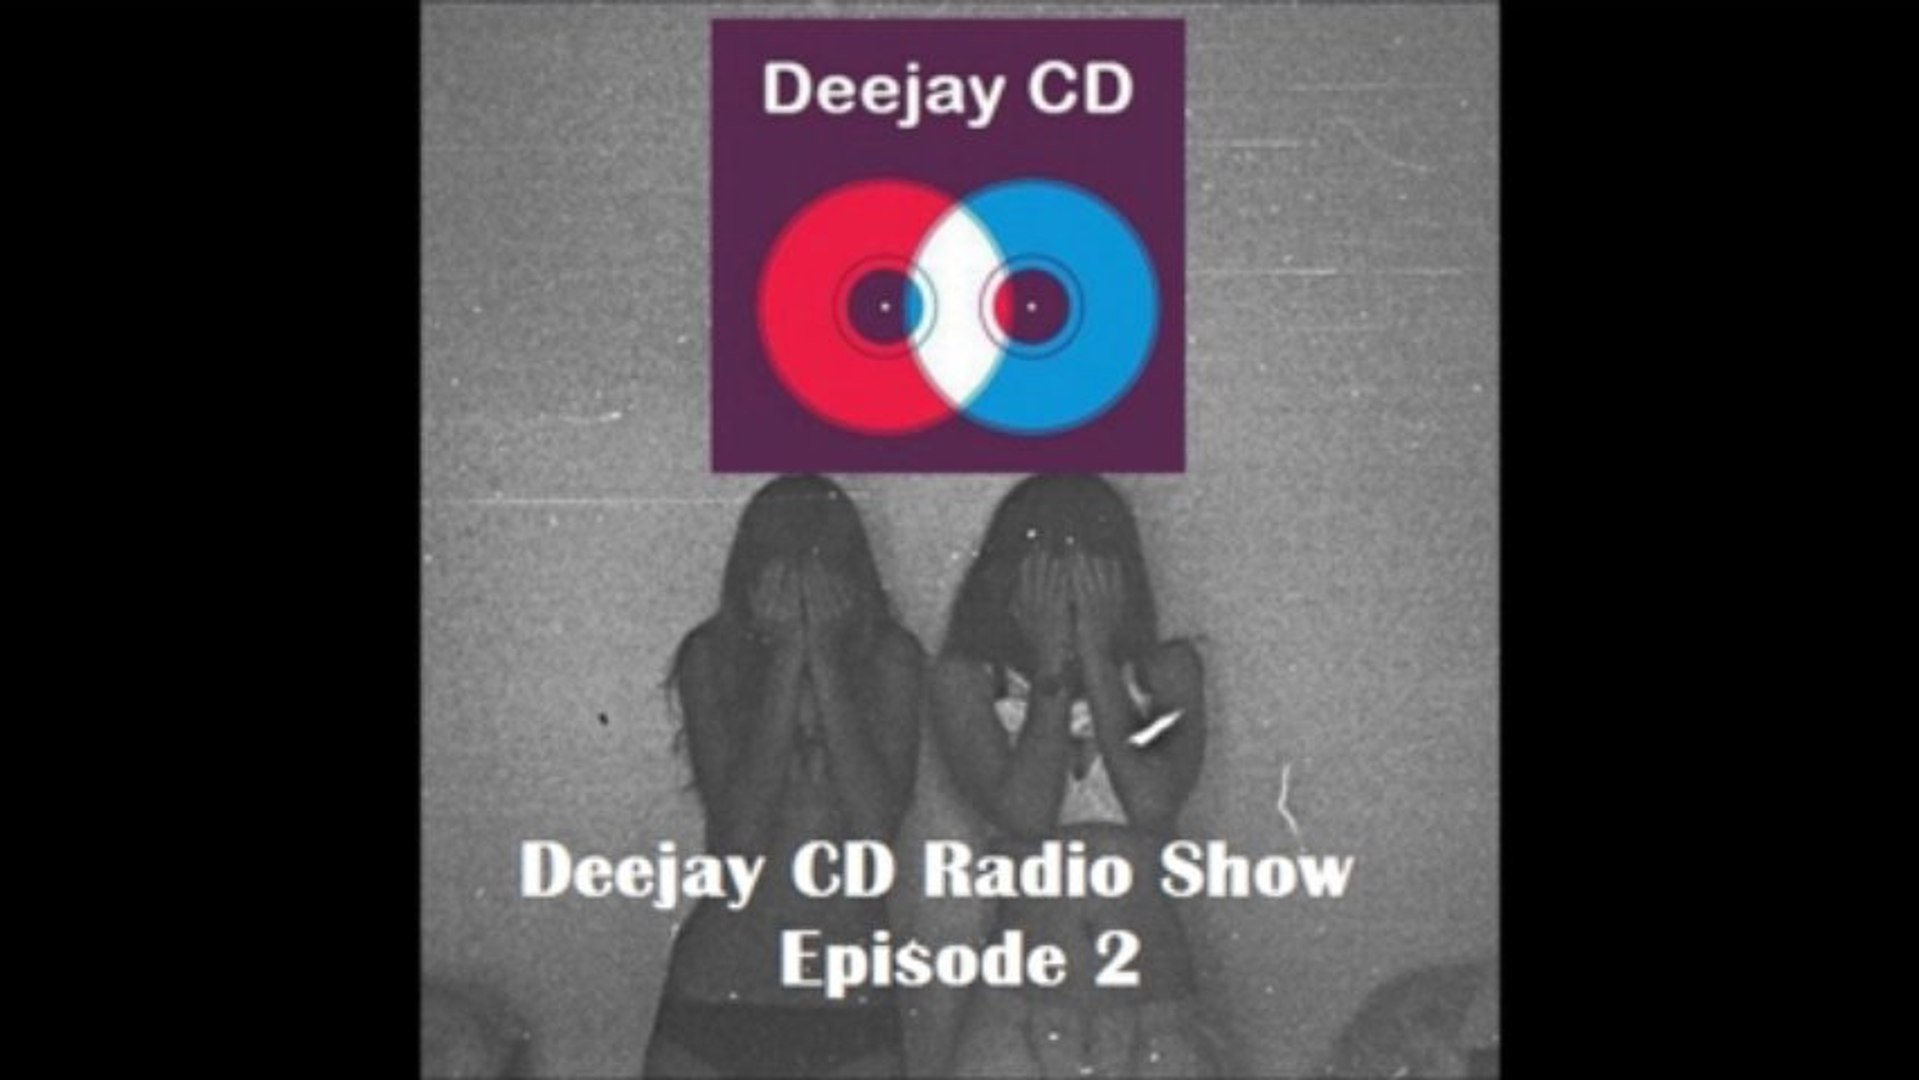 Deejay CD Radio Show Episode 2